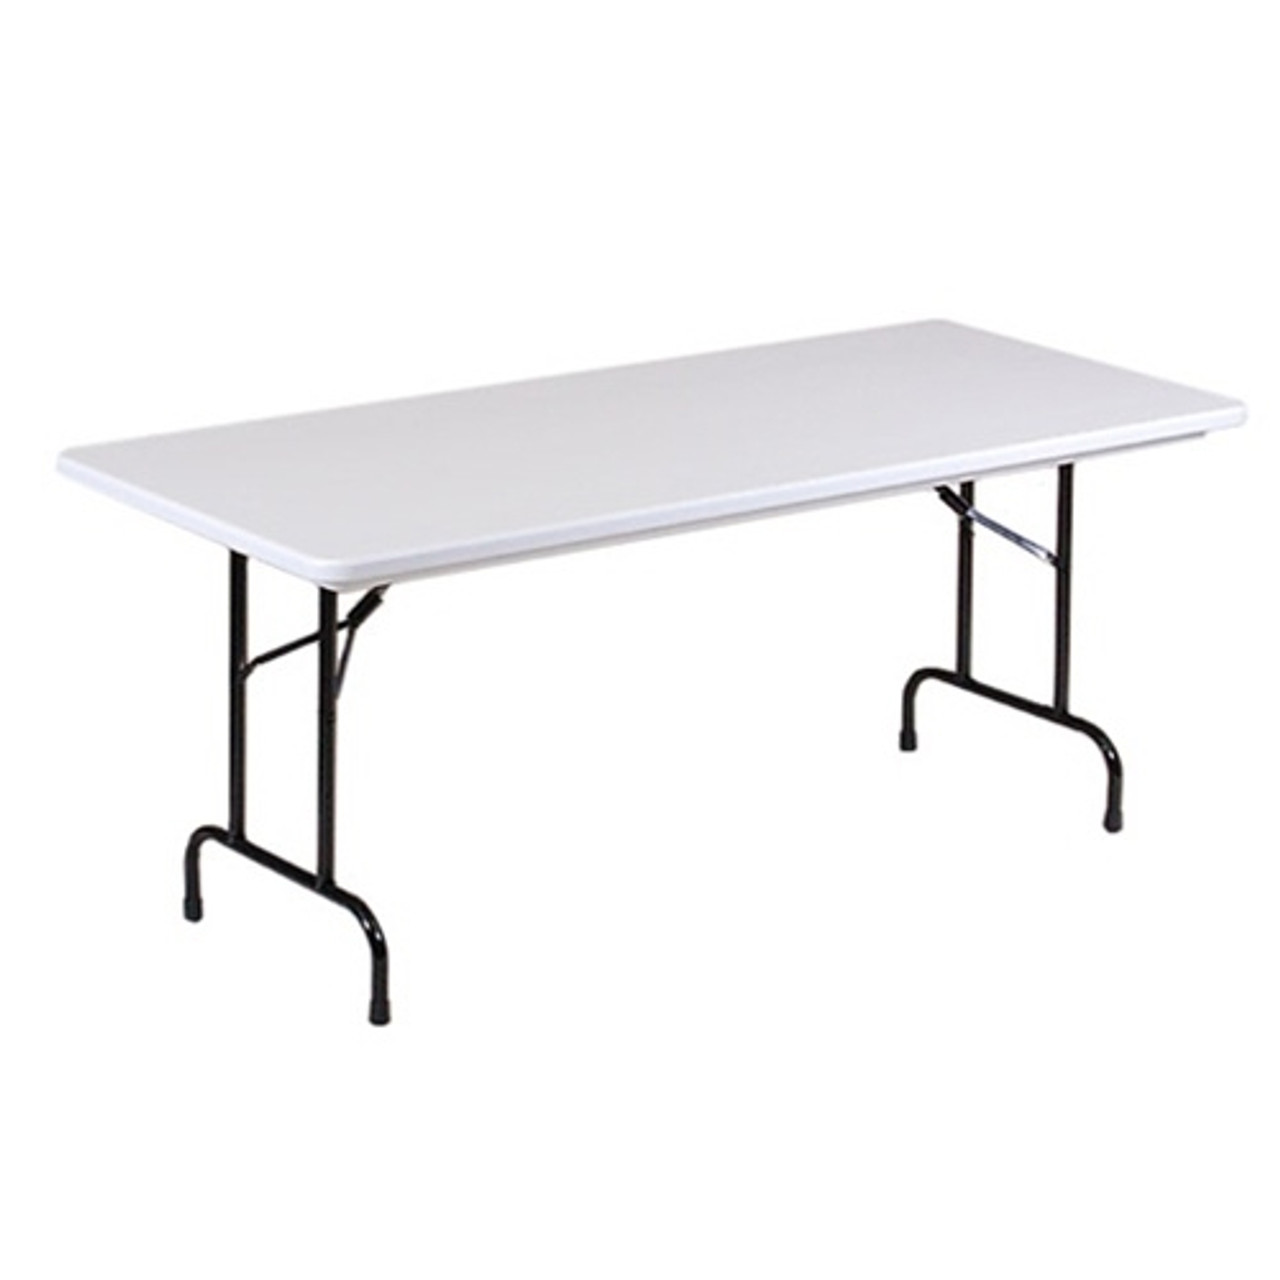 Correll R3096 8 Ft Long Plastic Folding Tables For Sale At Advantage Church Chairs